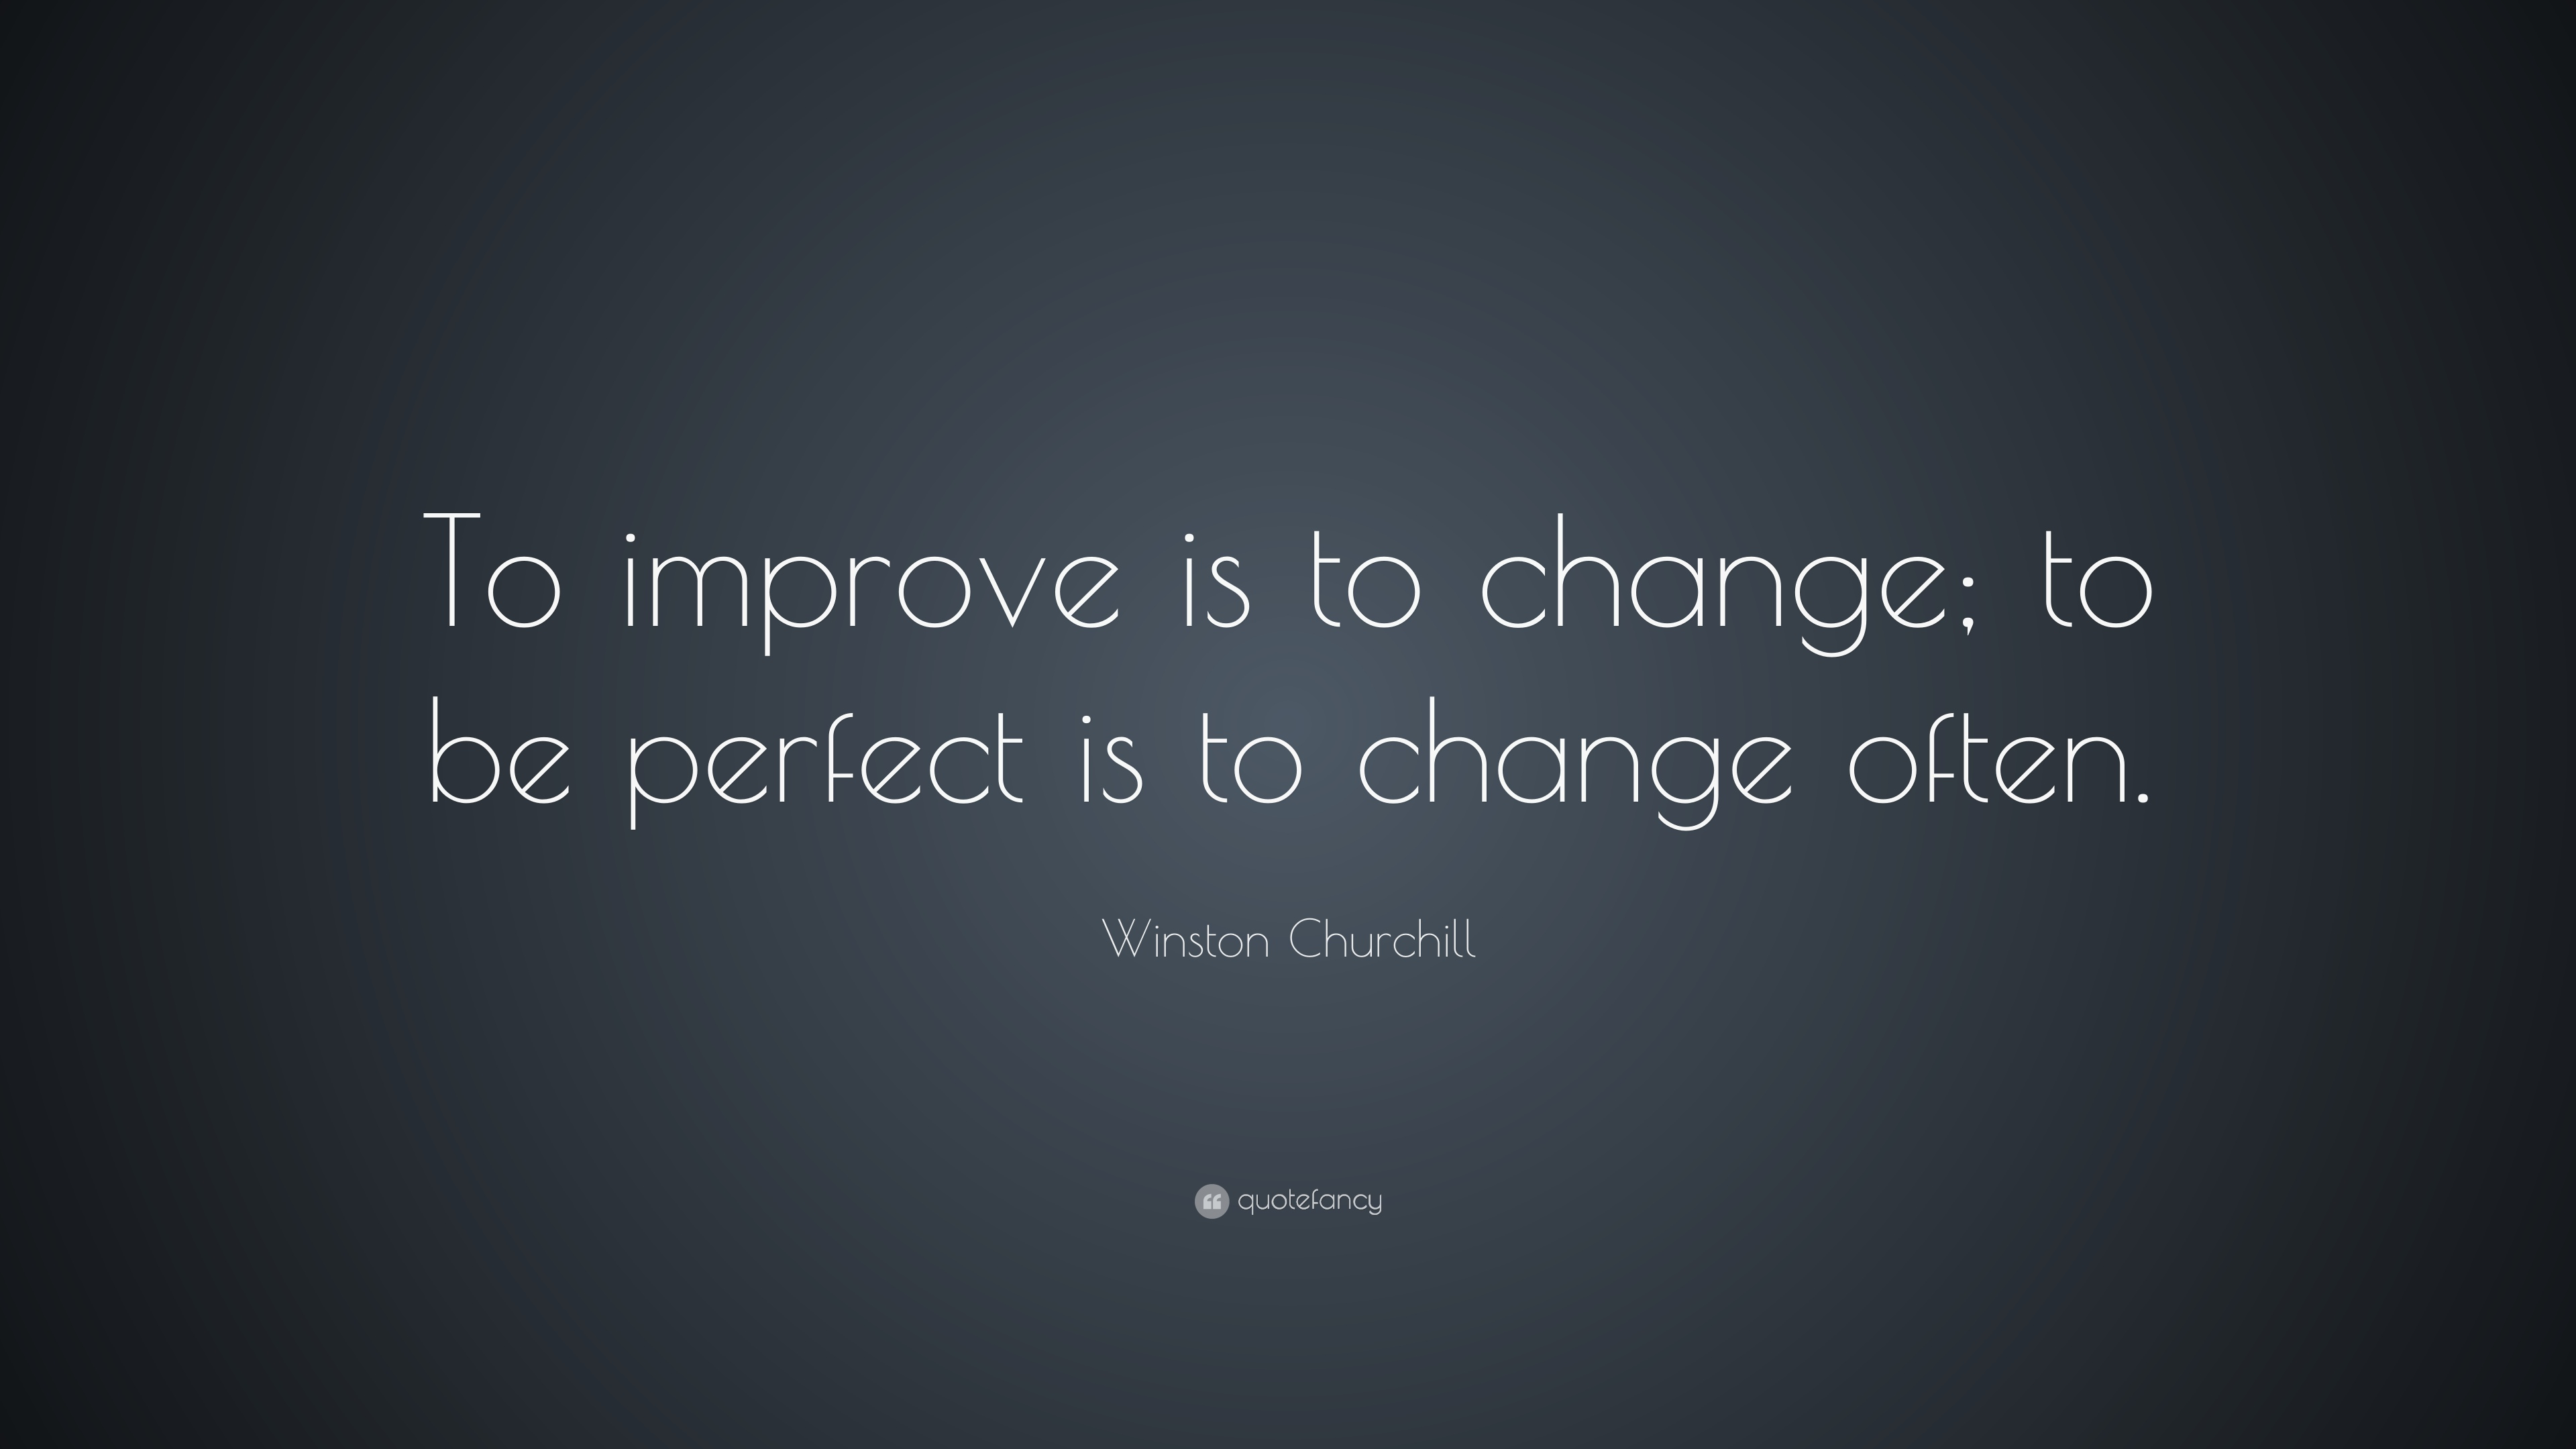 Quotes On Change Change Quotes 40 Wallpapers  Quotefancy